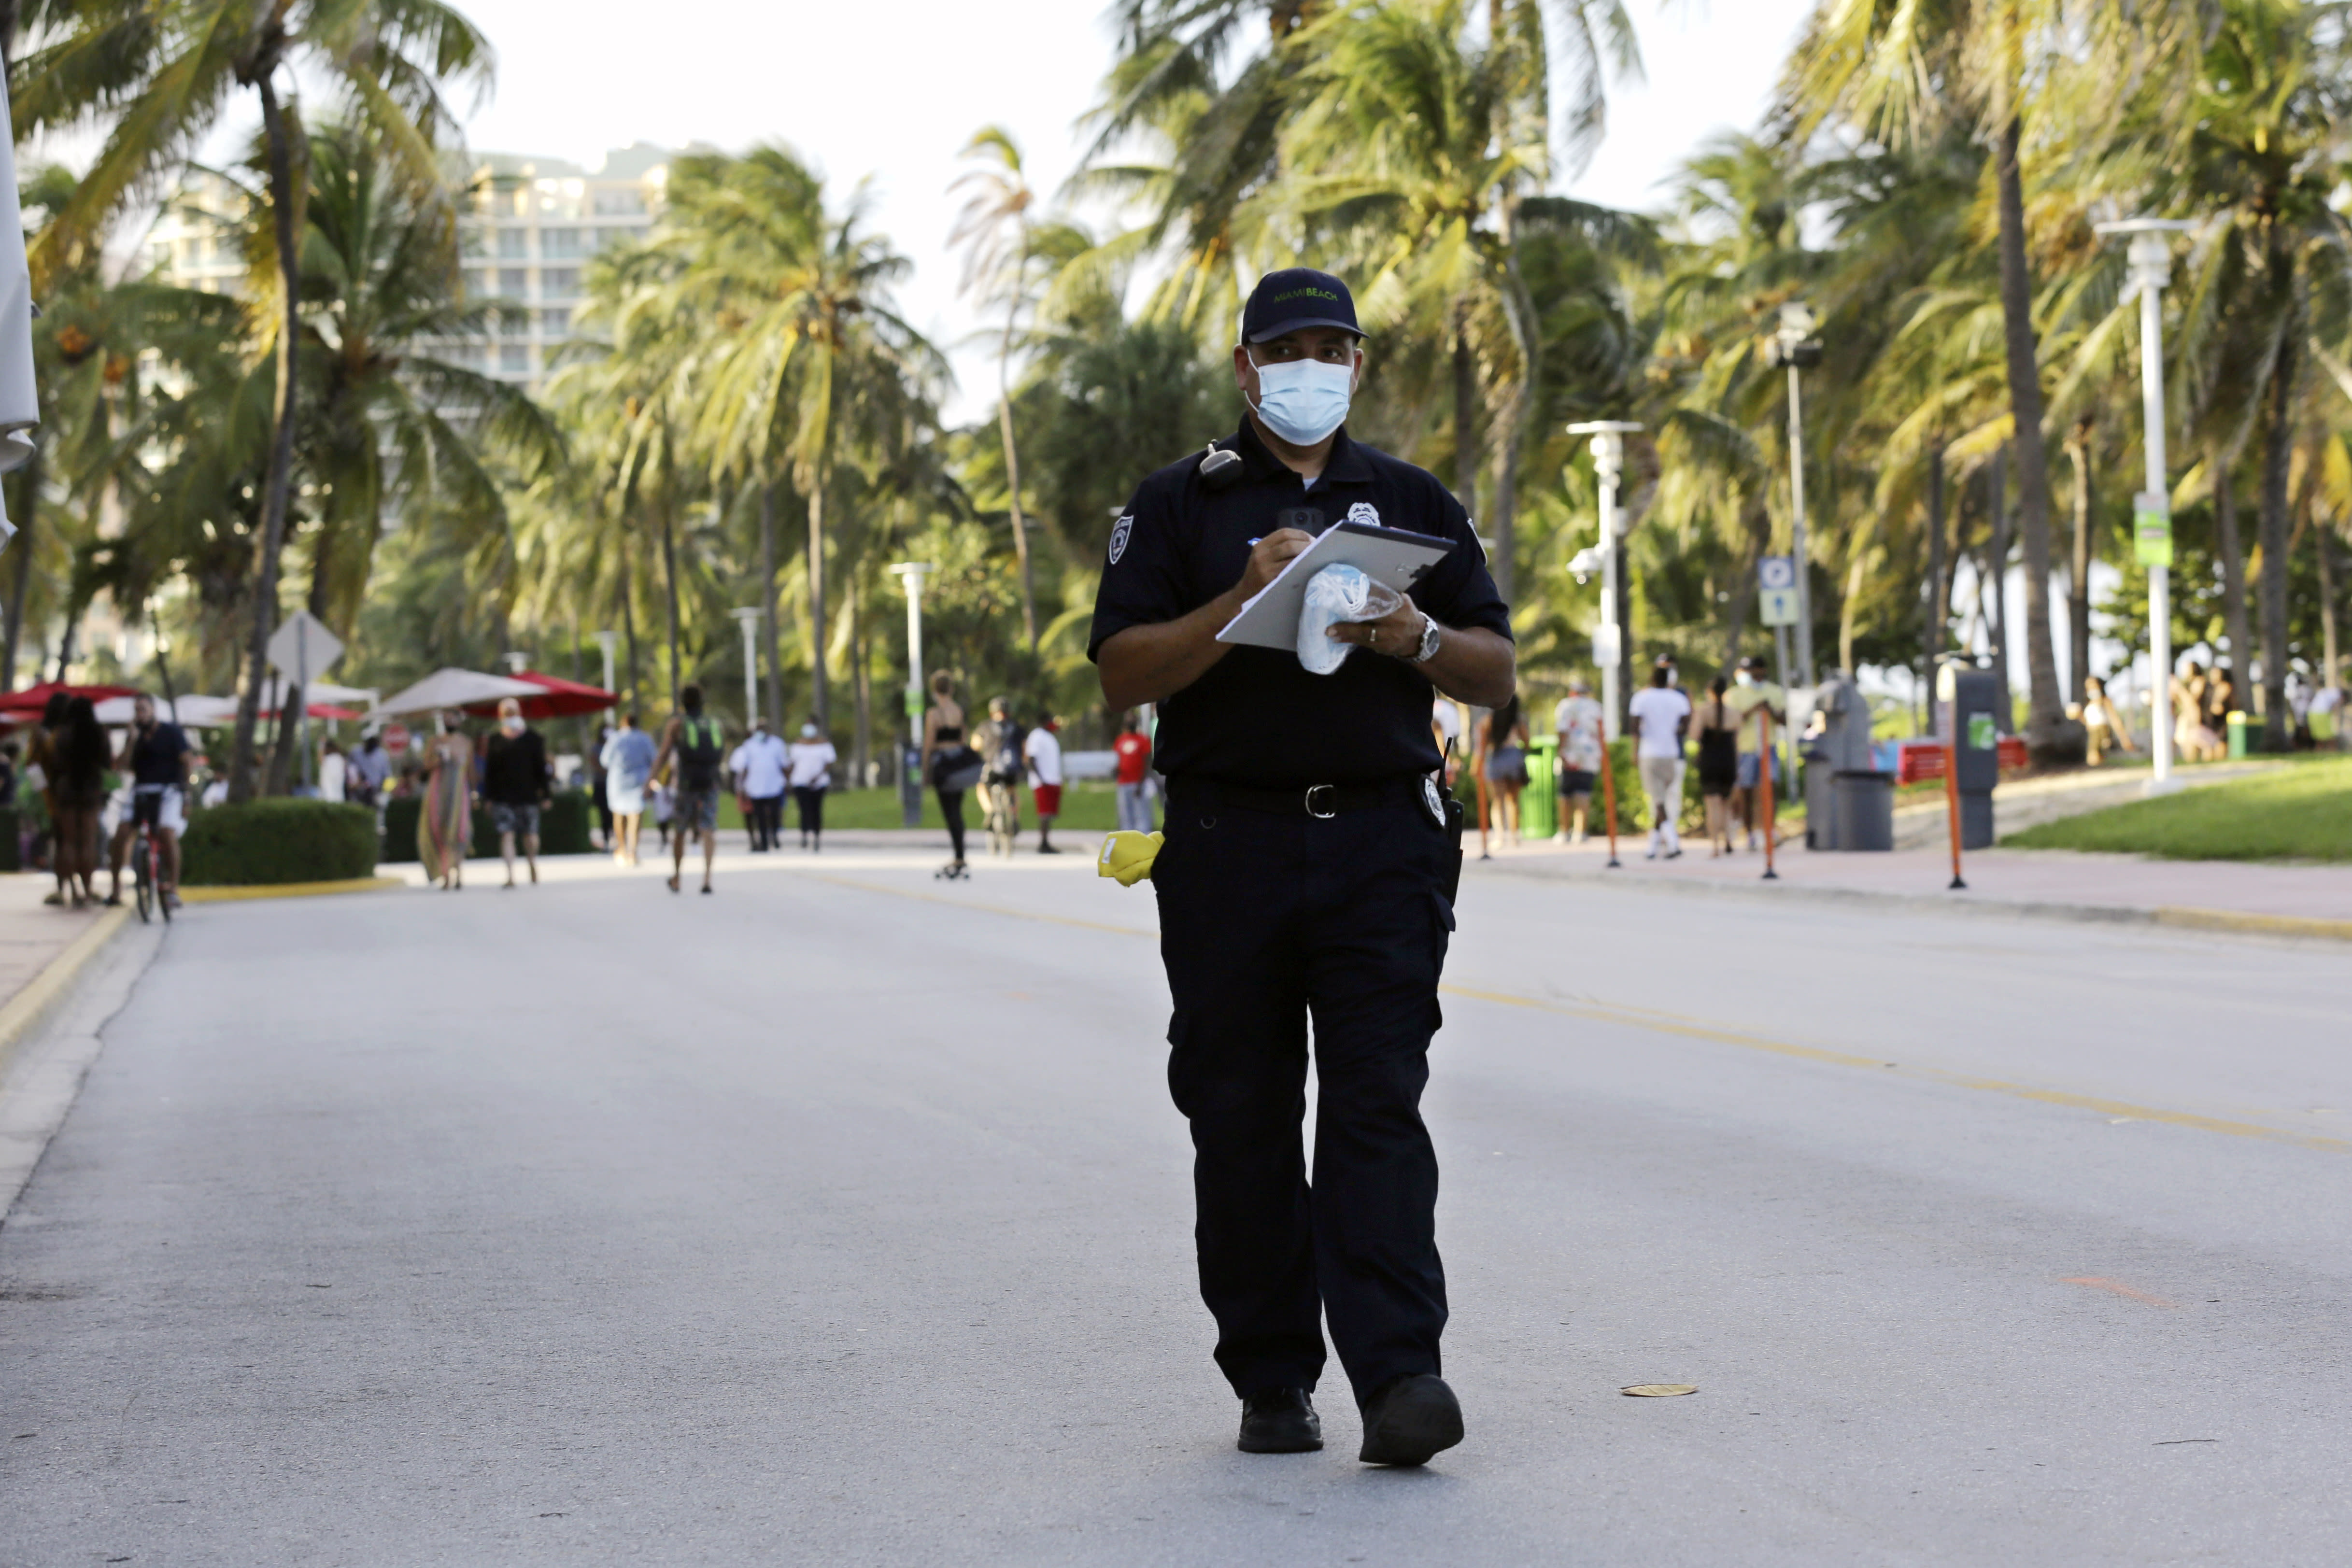 Luis Negron, a Miami Beach code compliance officer, walks along Ocean Drive amid the coronavirus pandemic, Friday, July 24, 2020, in Miami Beach, Fla. Masks are mandated both indoors and outdoors in Miami Beach. People found not wearing a mask are subject to a civil fine of $50. (AP Photo/Lynne Sladky)